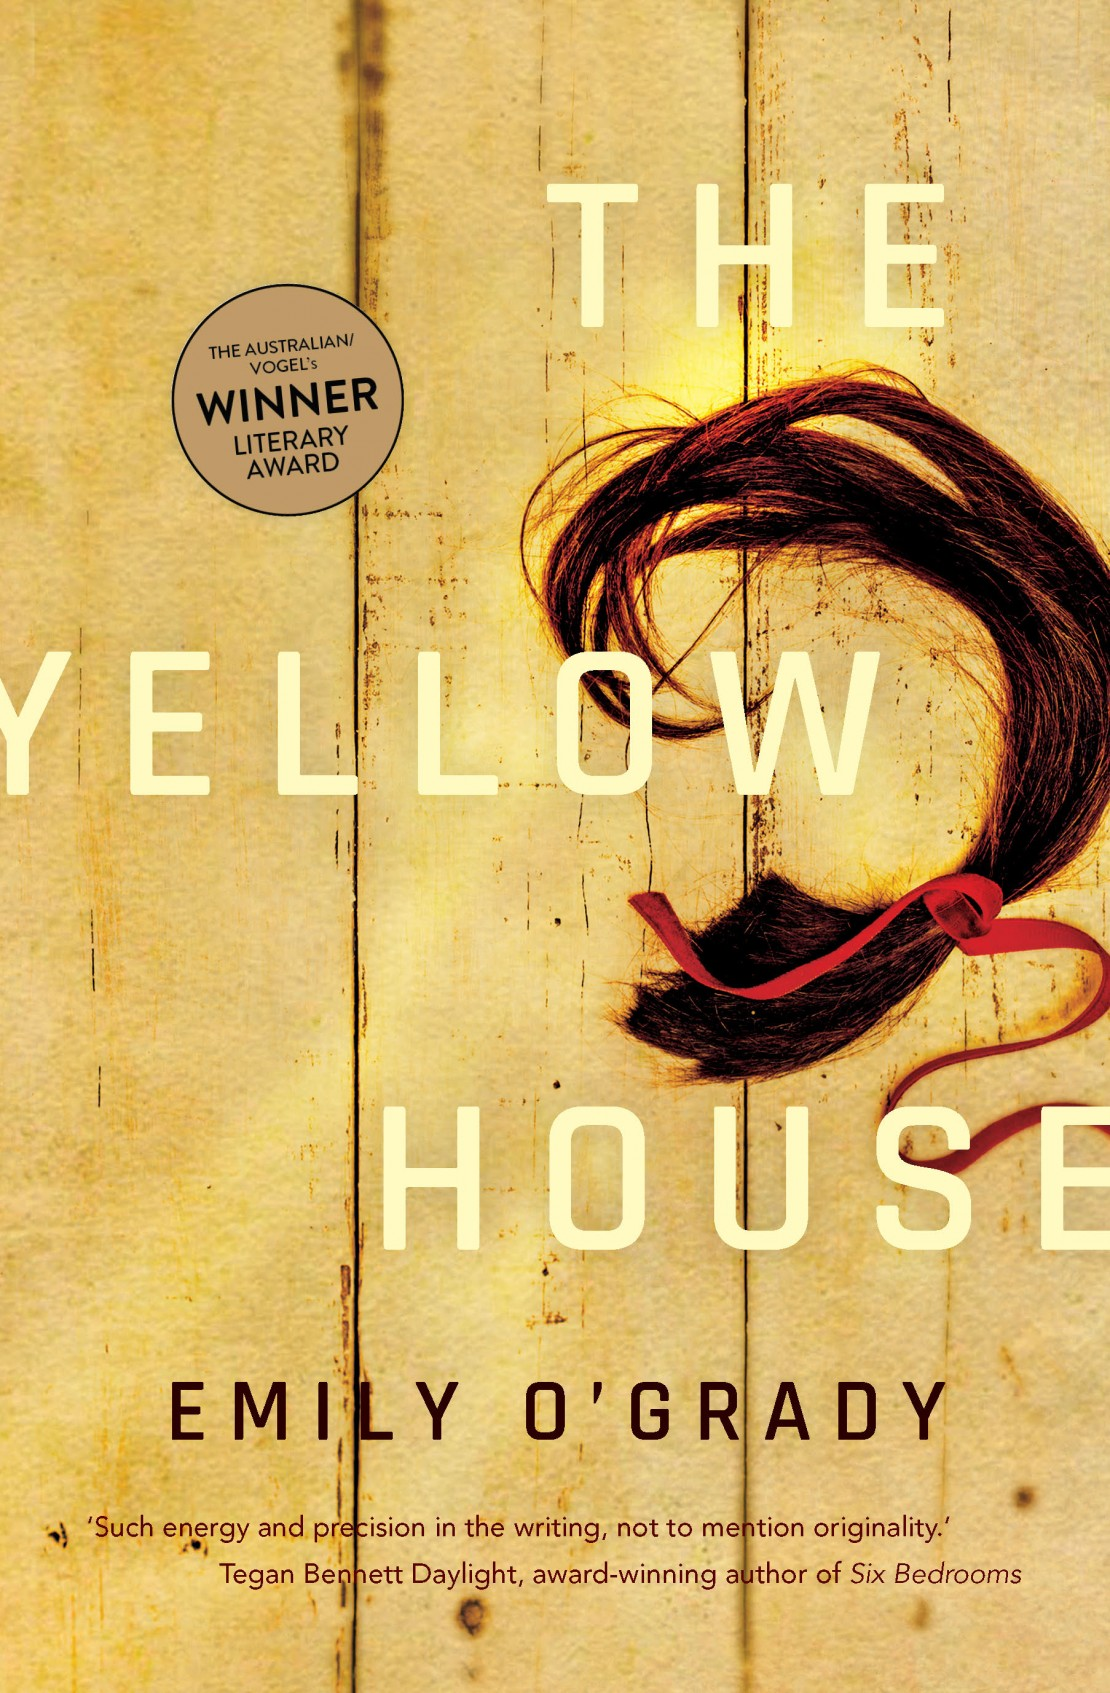 The Yellow House by Emily OGrady